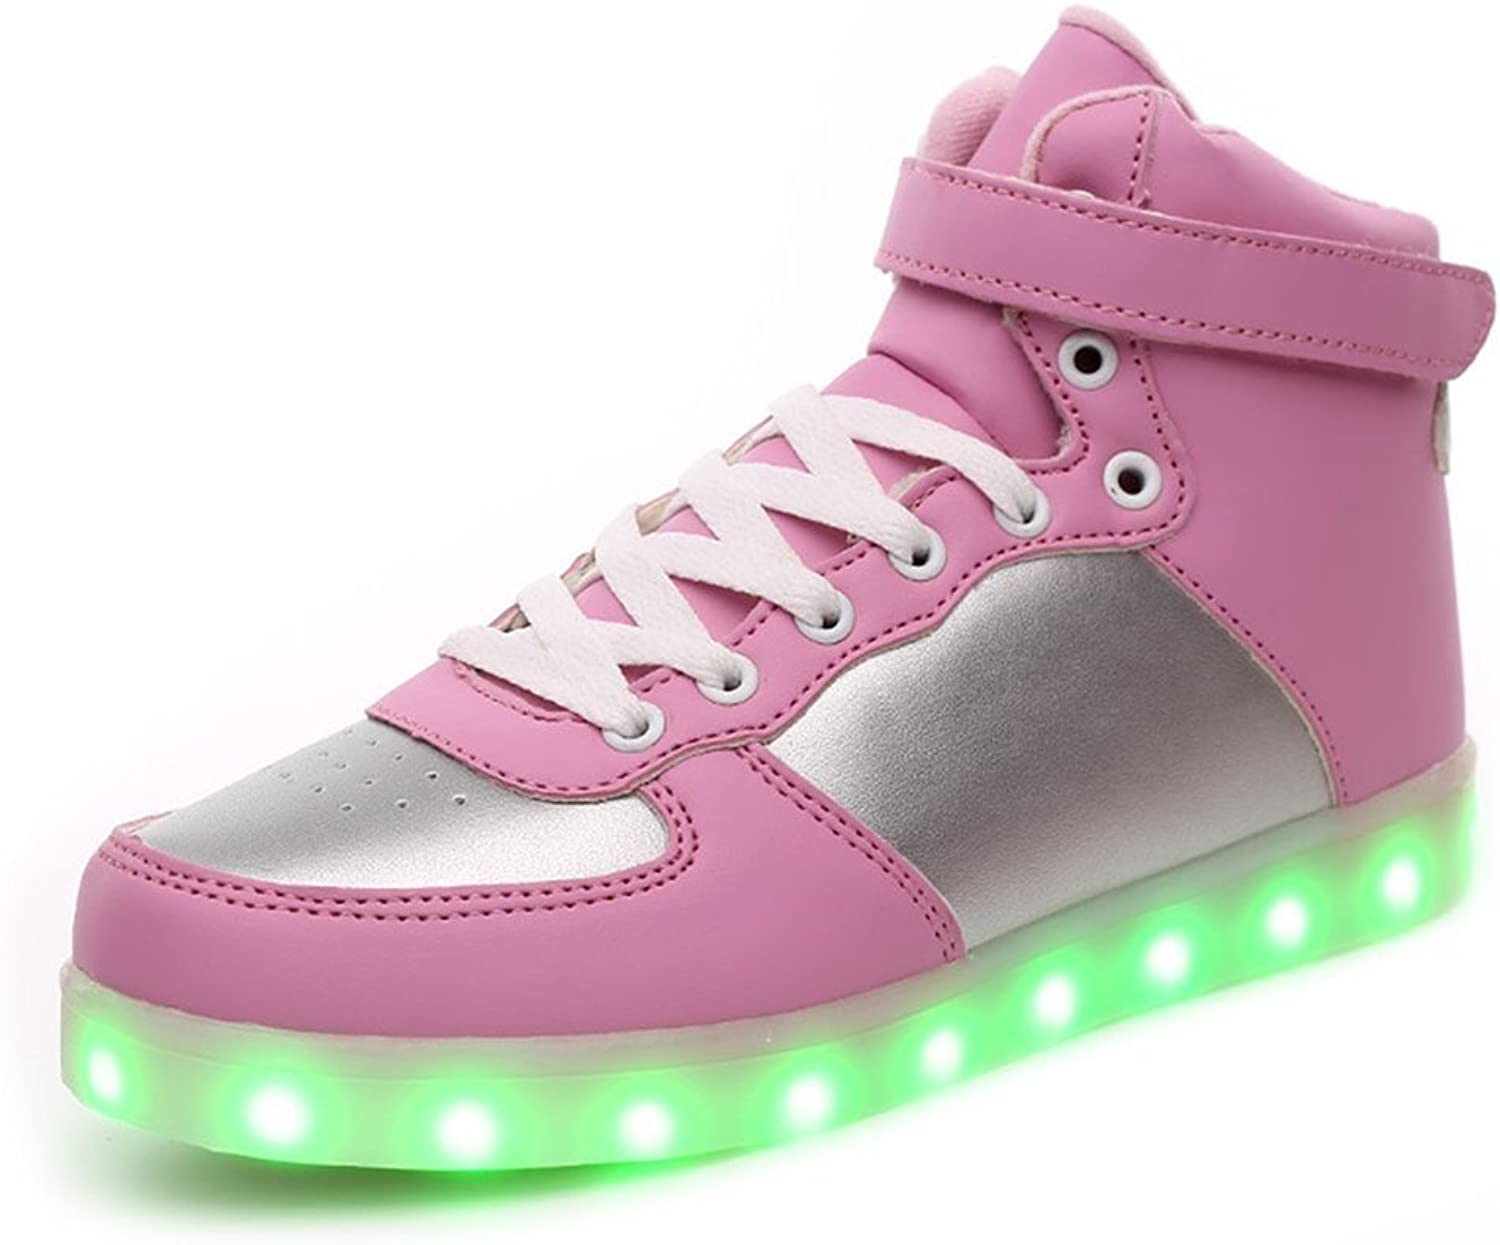 Jedi fight back Women Men Unisex High Top USB Charging shoes Light Up shoes Flashing Sneakers